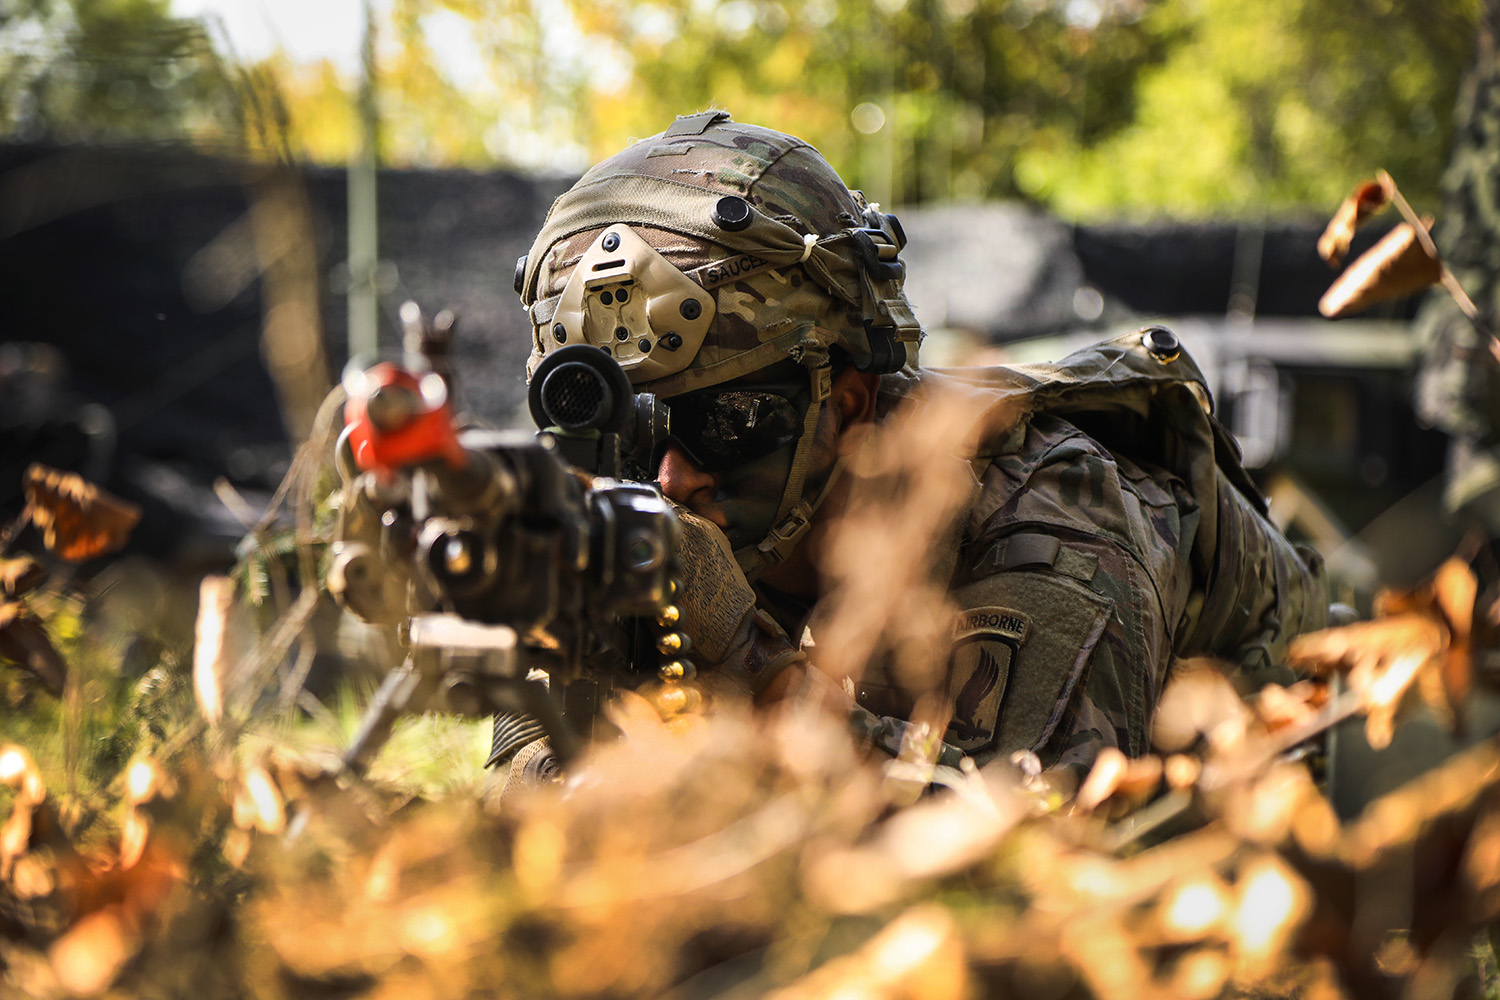 U.S. Army Pfc. Albino Saucedo scans his sector of fire during Saber Junction 19 at the Hohenfels Training Area in Germany, Sept. 20, 2019. (Spc. Meagan Mooney/Army)